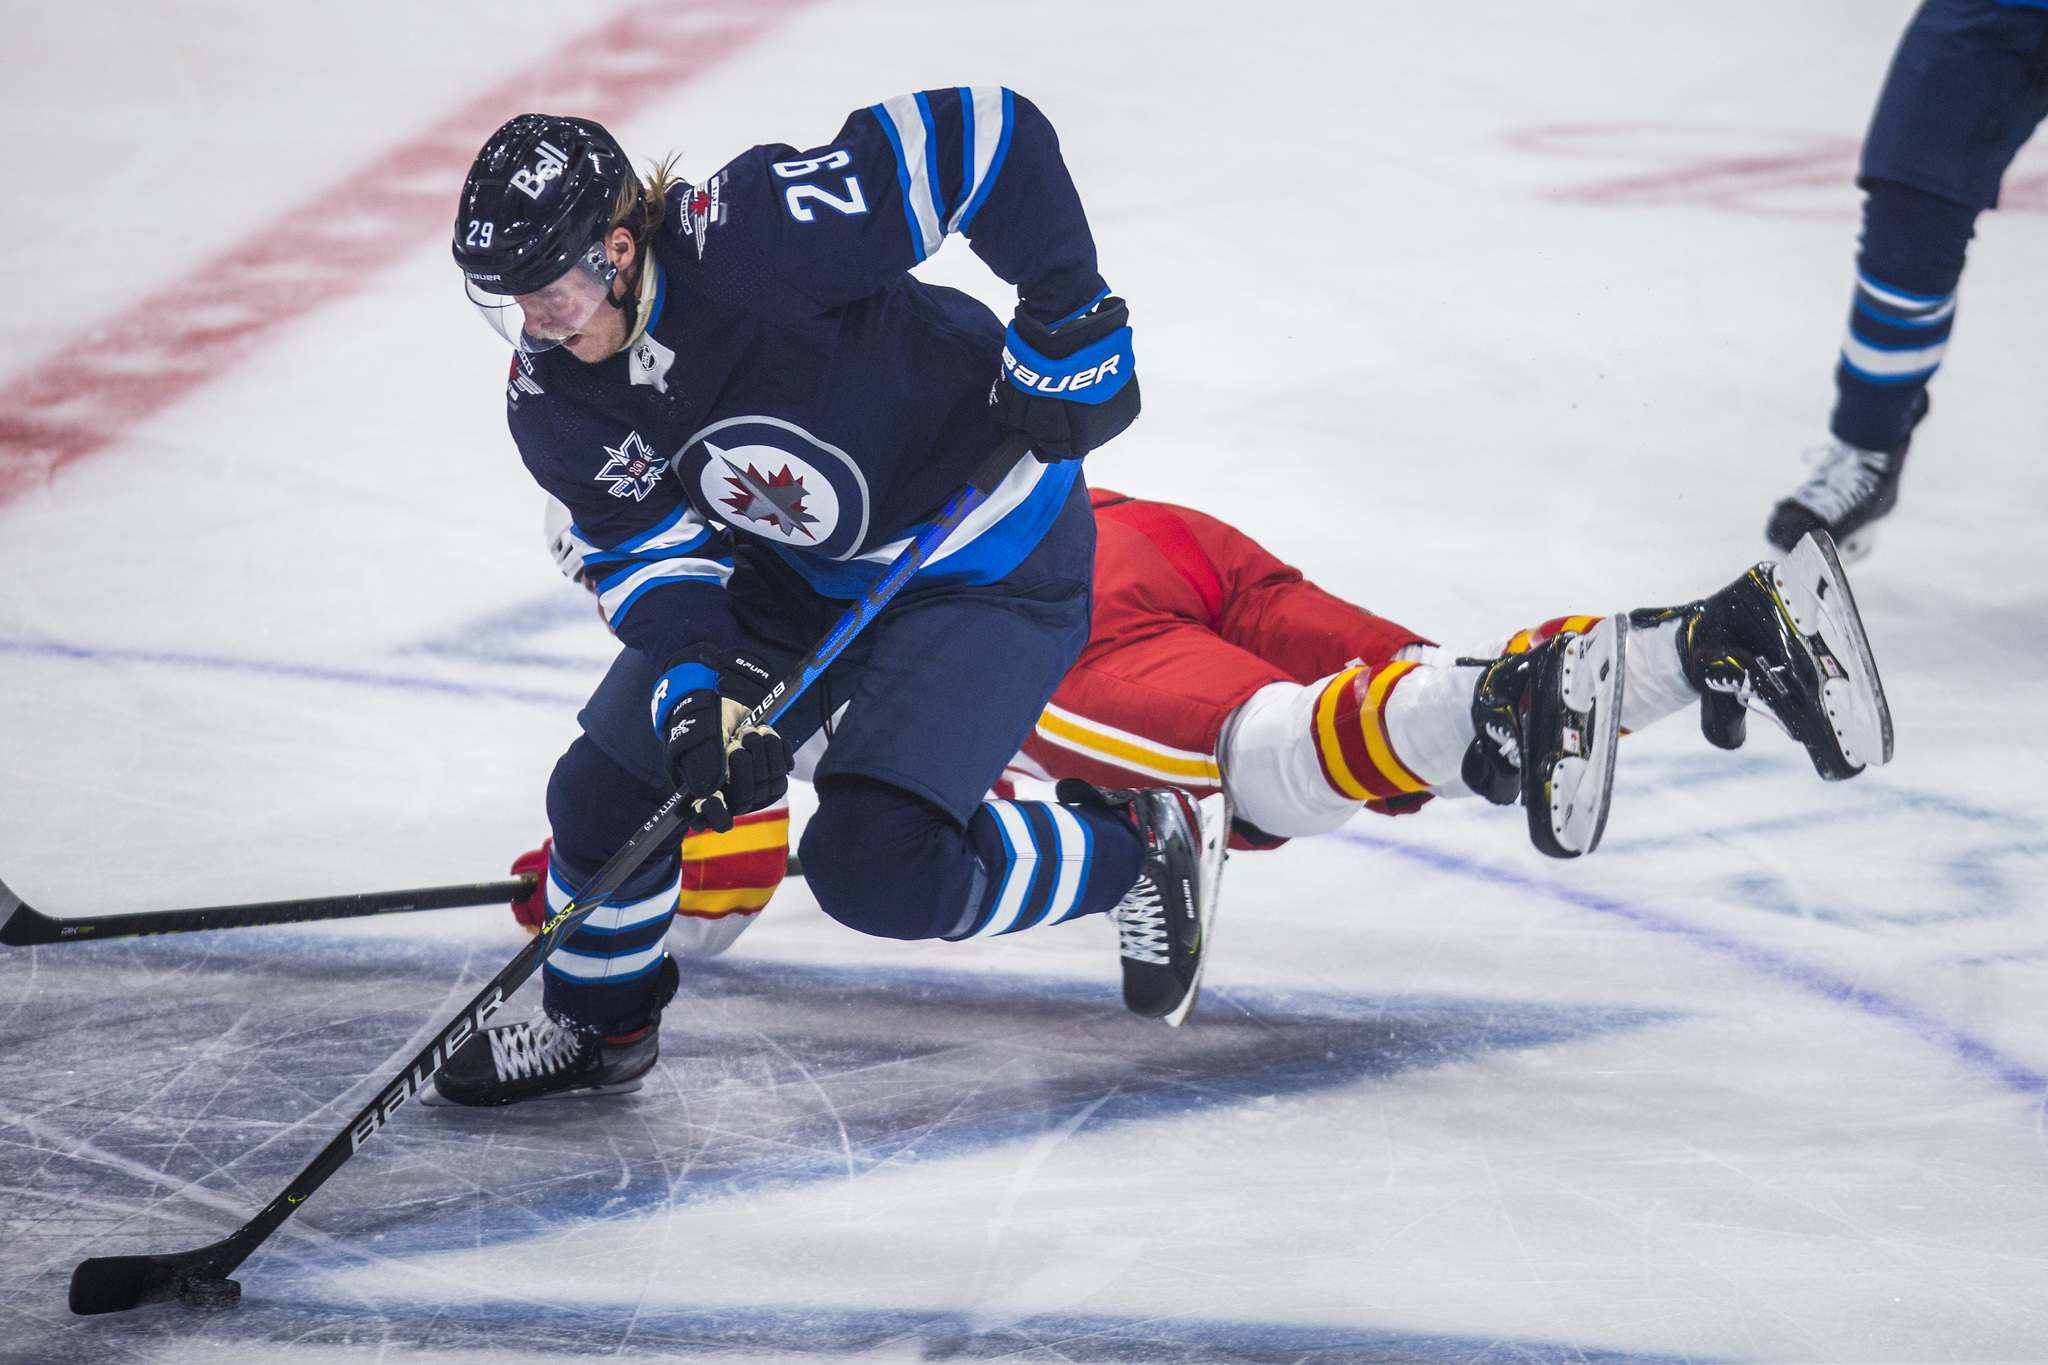 Swapping places with Patrik Laine, Pierre-Luc Dubois says he isn't intimidated by the legacy the former Jets sniper leaves behind.